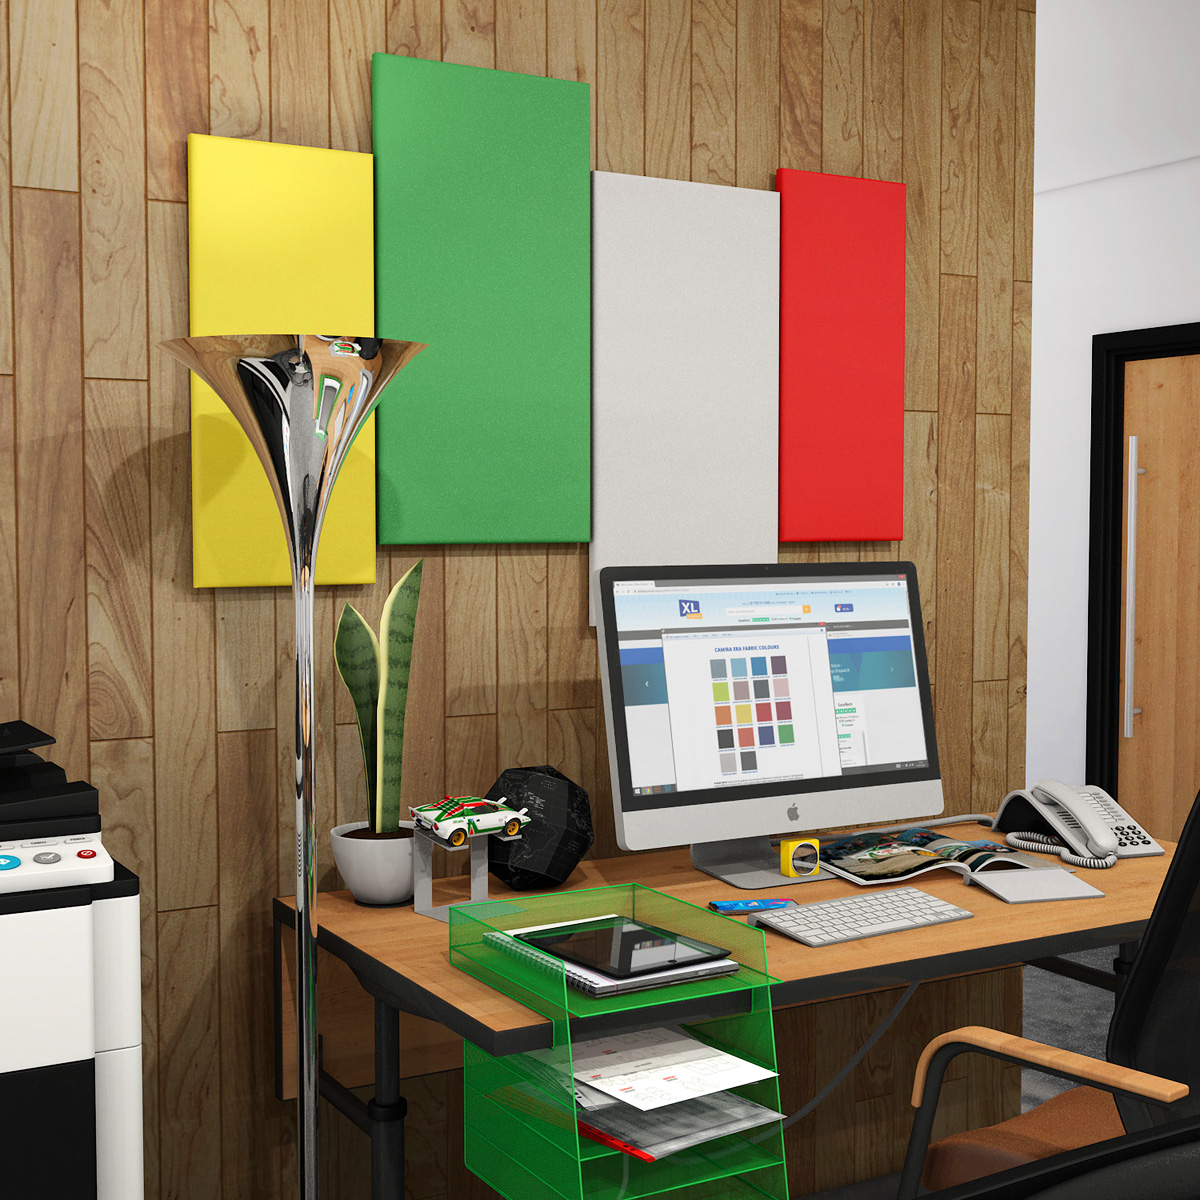 https://officescreens.co.uk/products/stratos-rectangle-acoustic-panelling.aspx